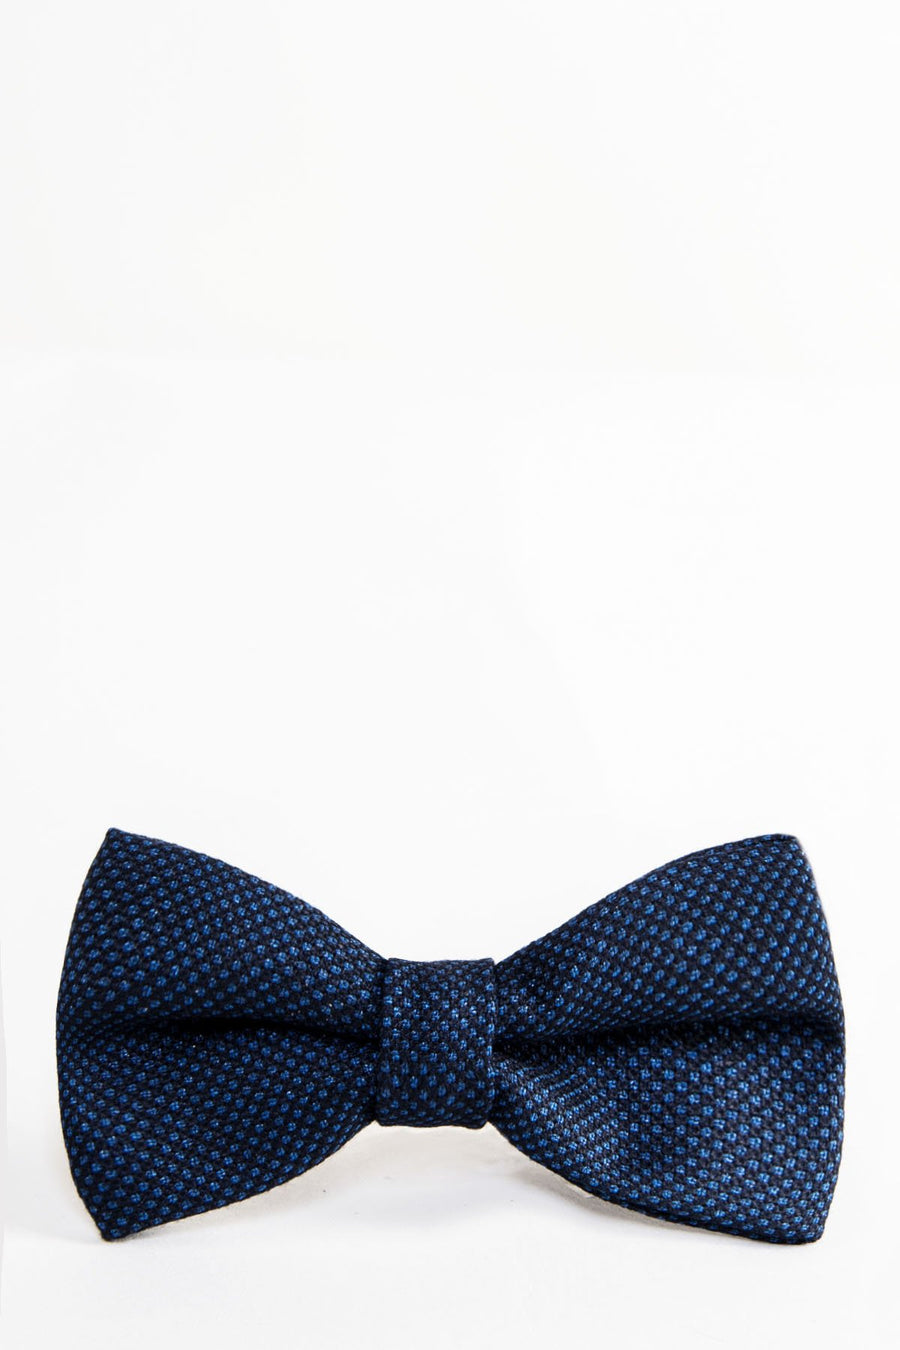 CALLUM Navy Blue Birdseye Bow Tie - Wedding Suit Direct